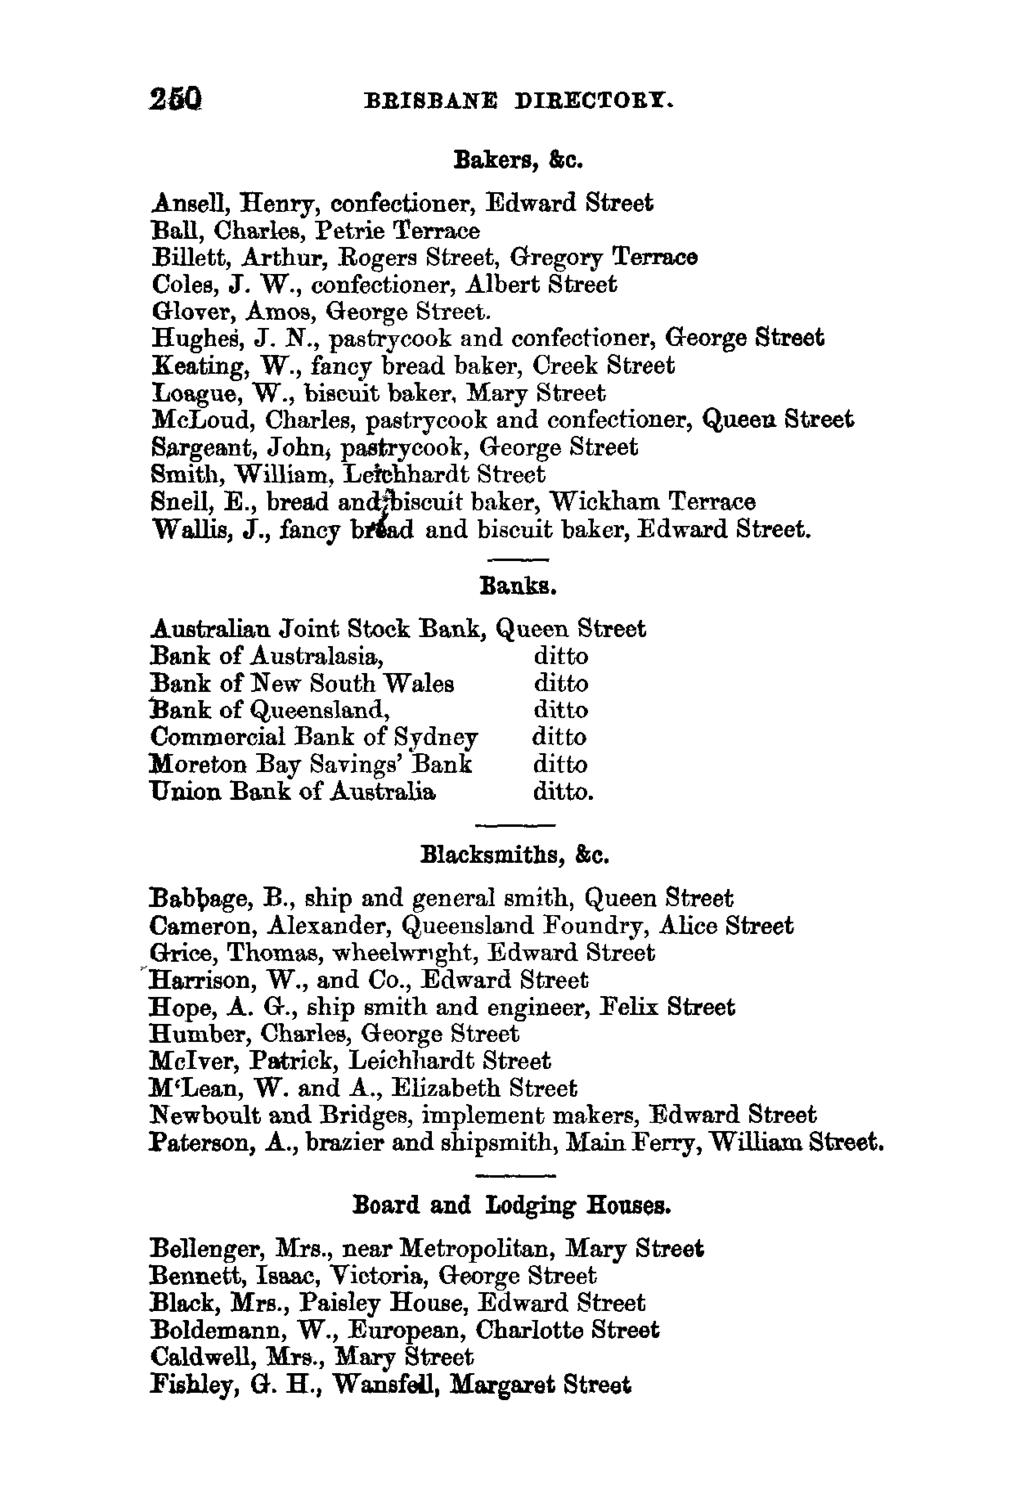 250 BRISBANE DIRECTORY. Bakers, &c. Ansell, Henry, confectioner, Edward Street Ball, Charles, Petrie Terrace Billed, Arthur, Rogers Street, Gregory Terrace Coles, J. W.